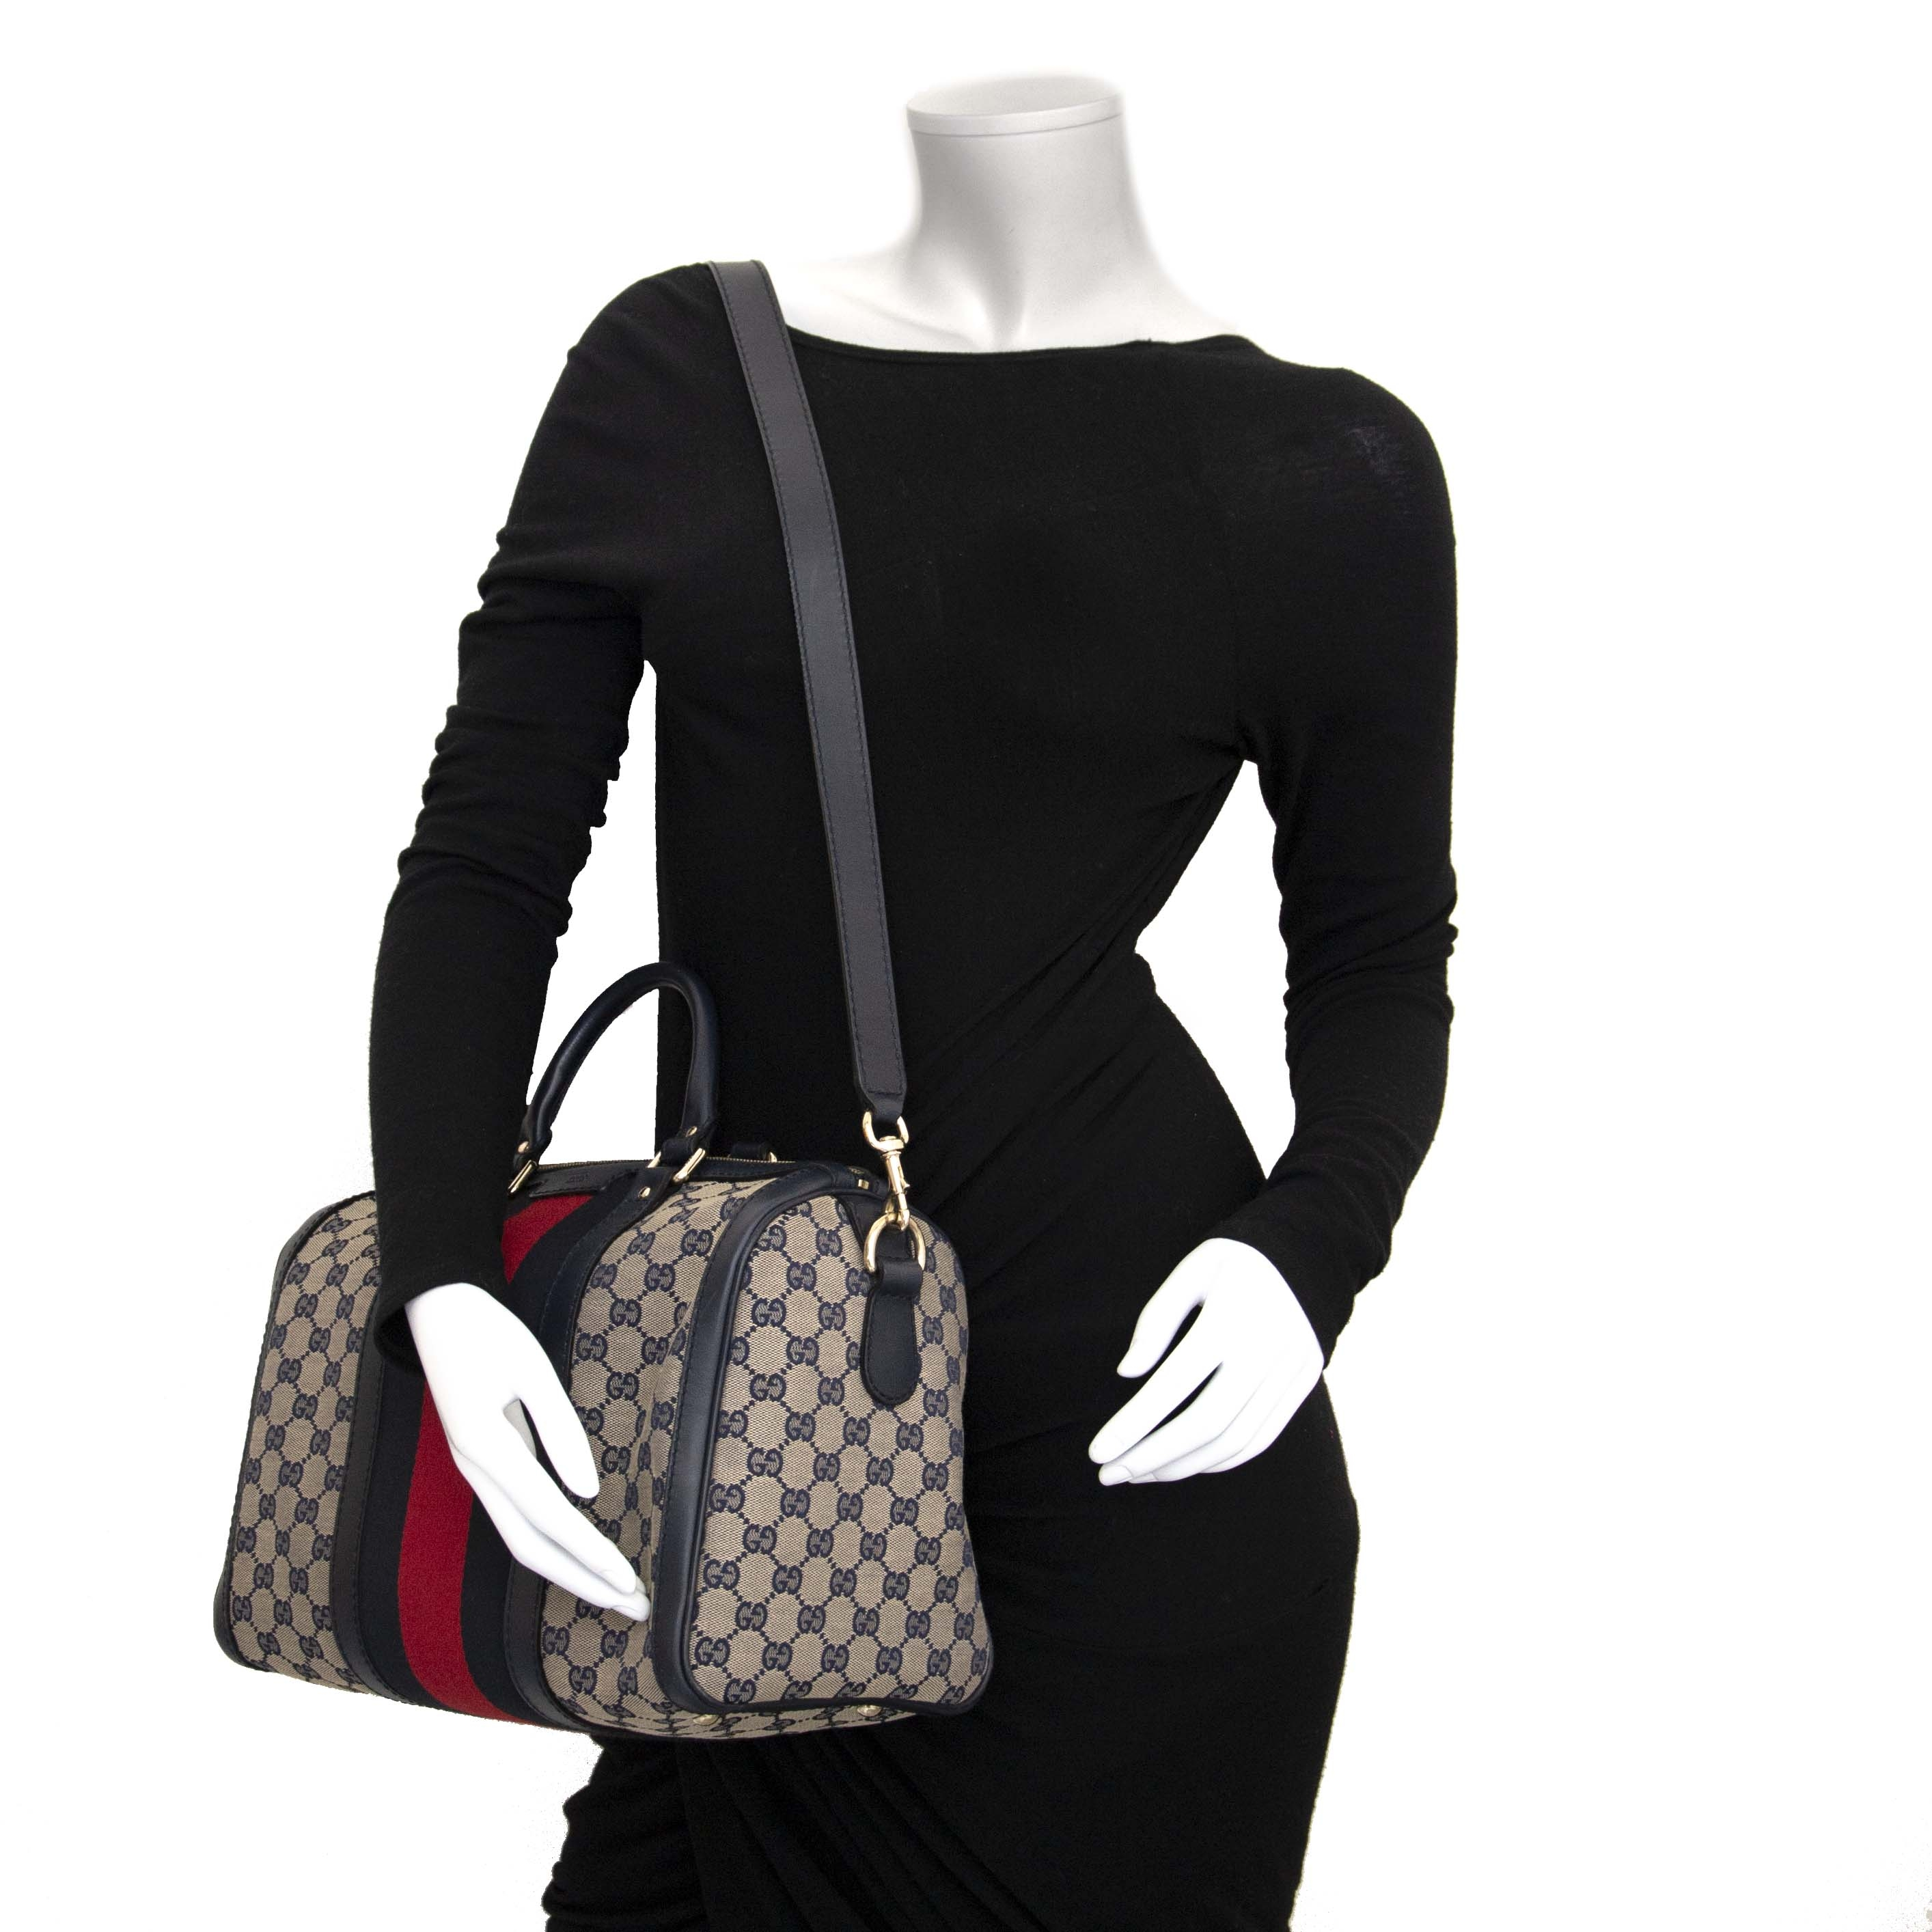 d0f783d73 ... Labellov secondhand luxury We buy and sell your authentic Gucci Vintage  Web Original GG Boston Bag online